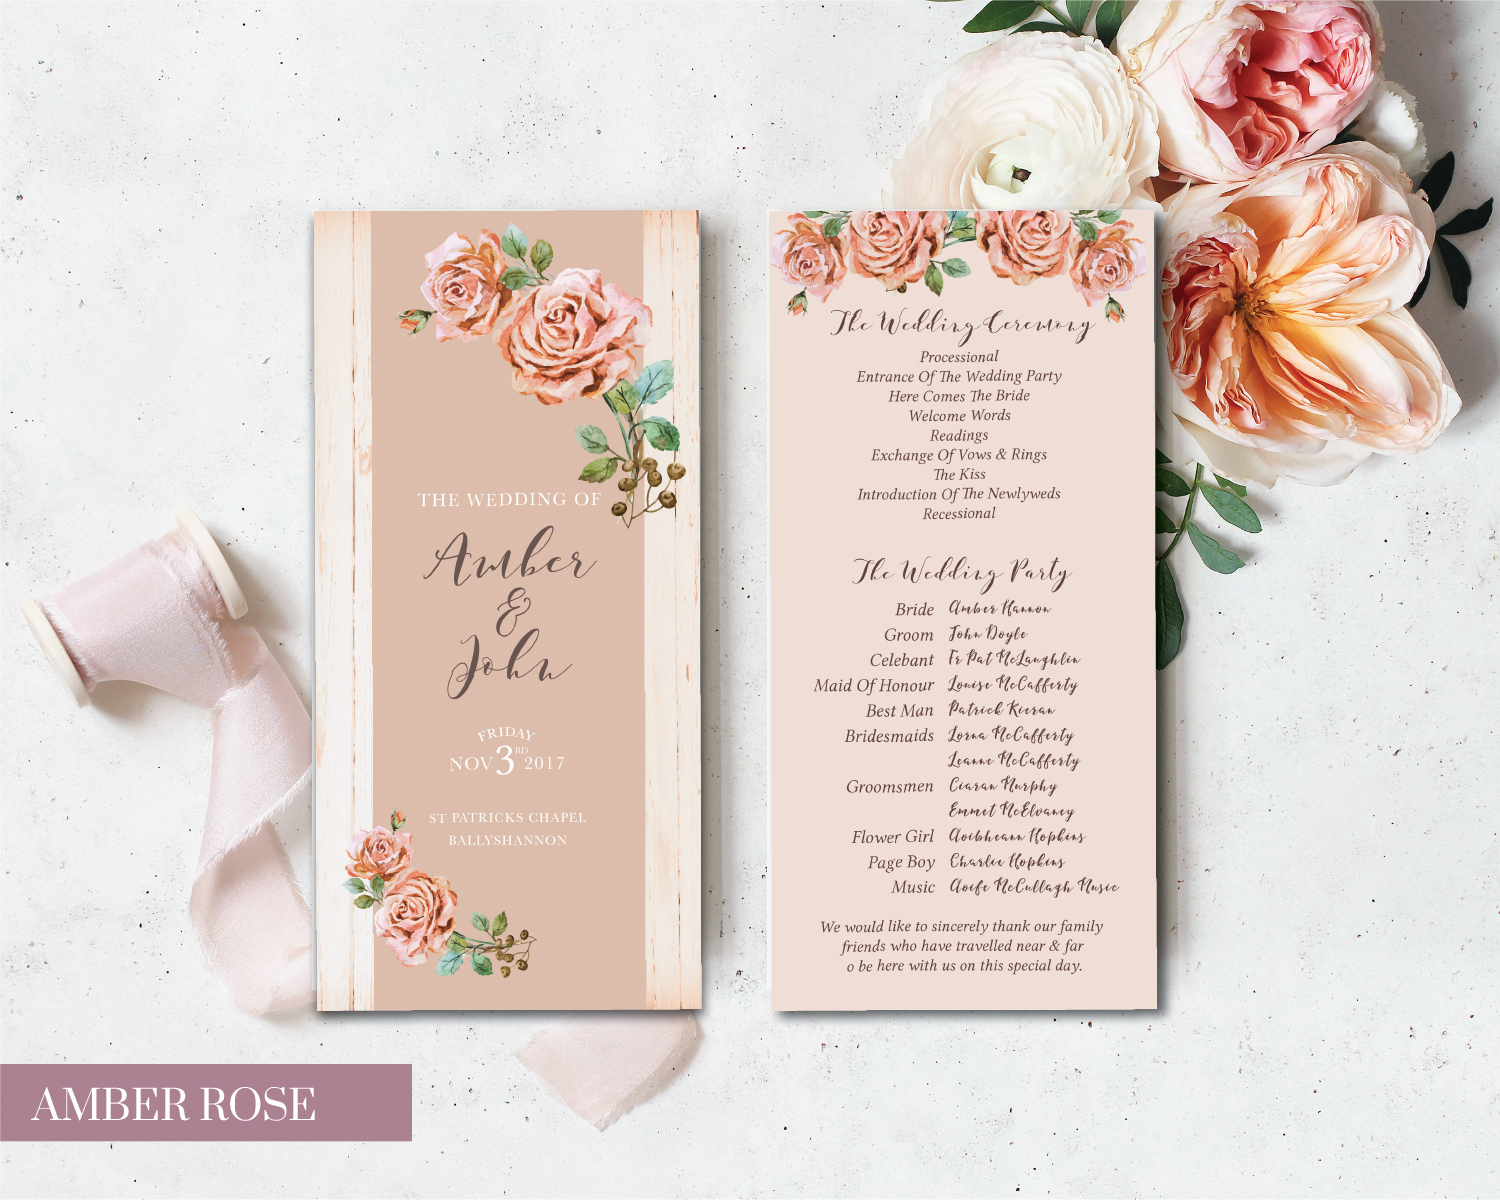 Amber Rose Bridal Cards